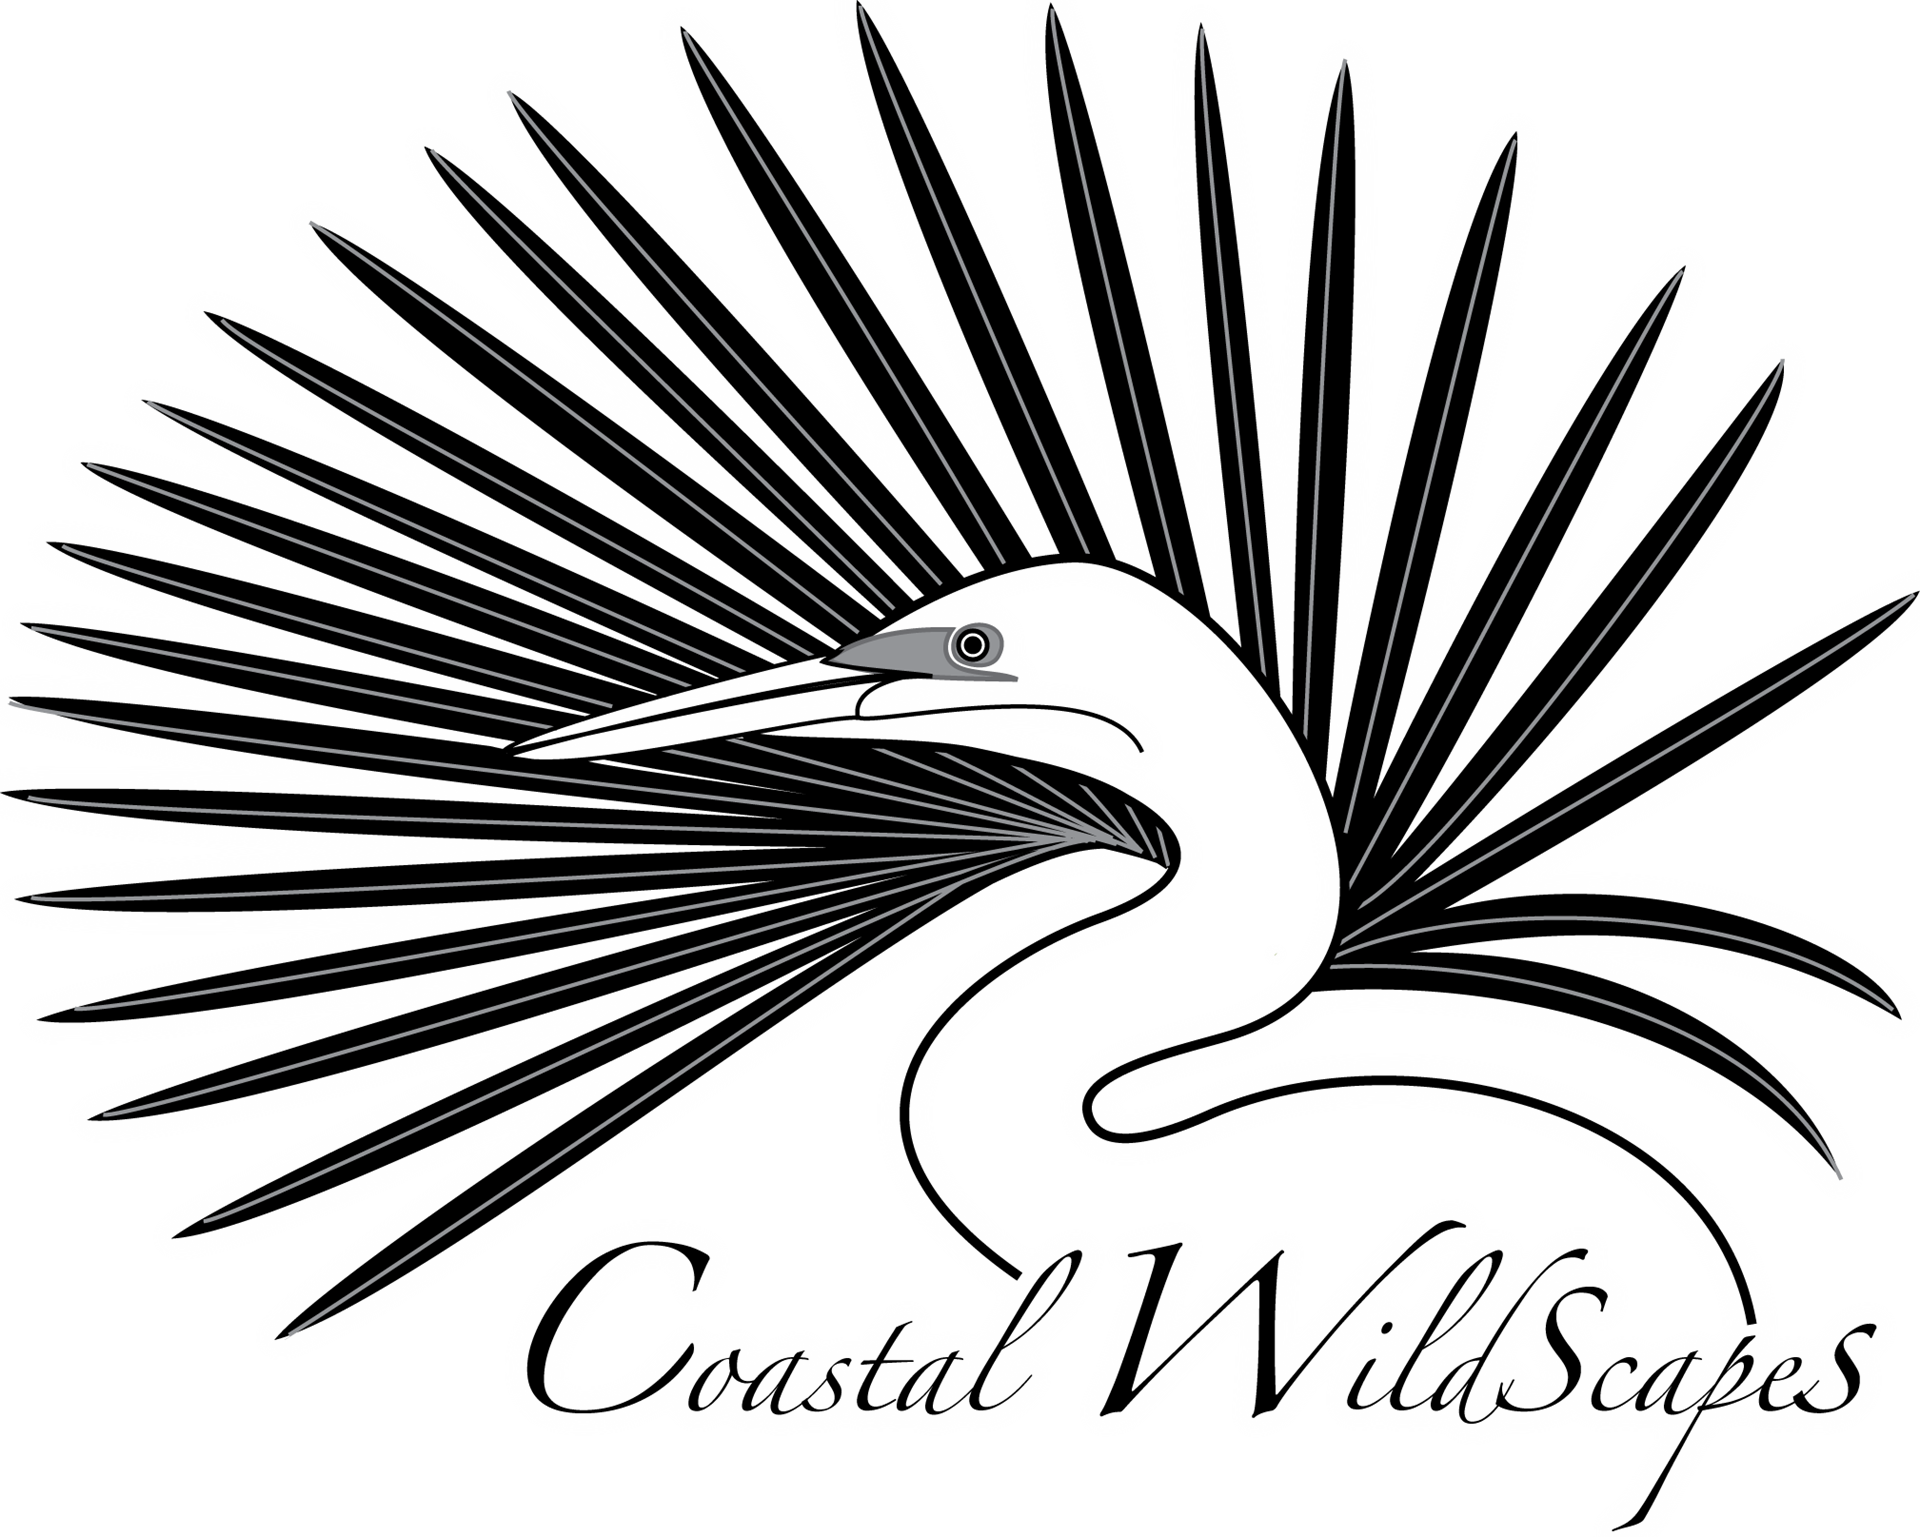 Coastal wildscapes open the. Gate clipart garden club